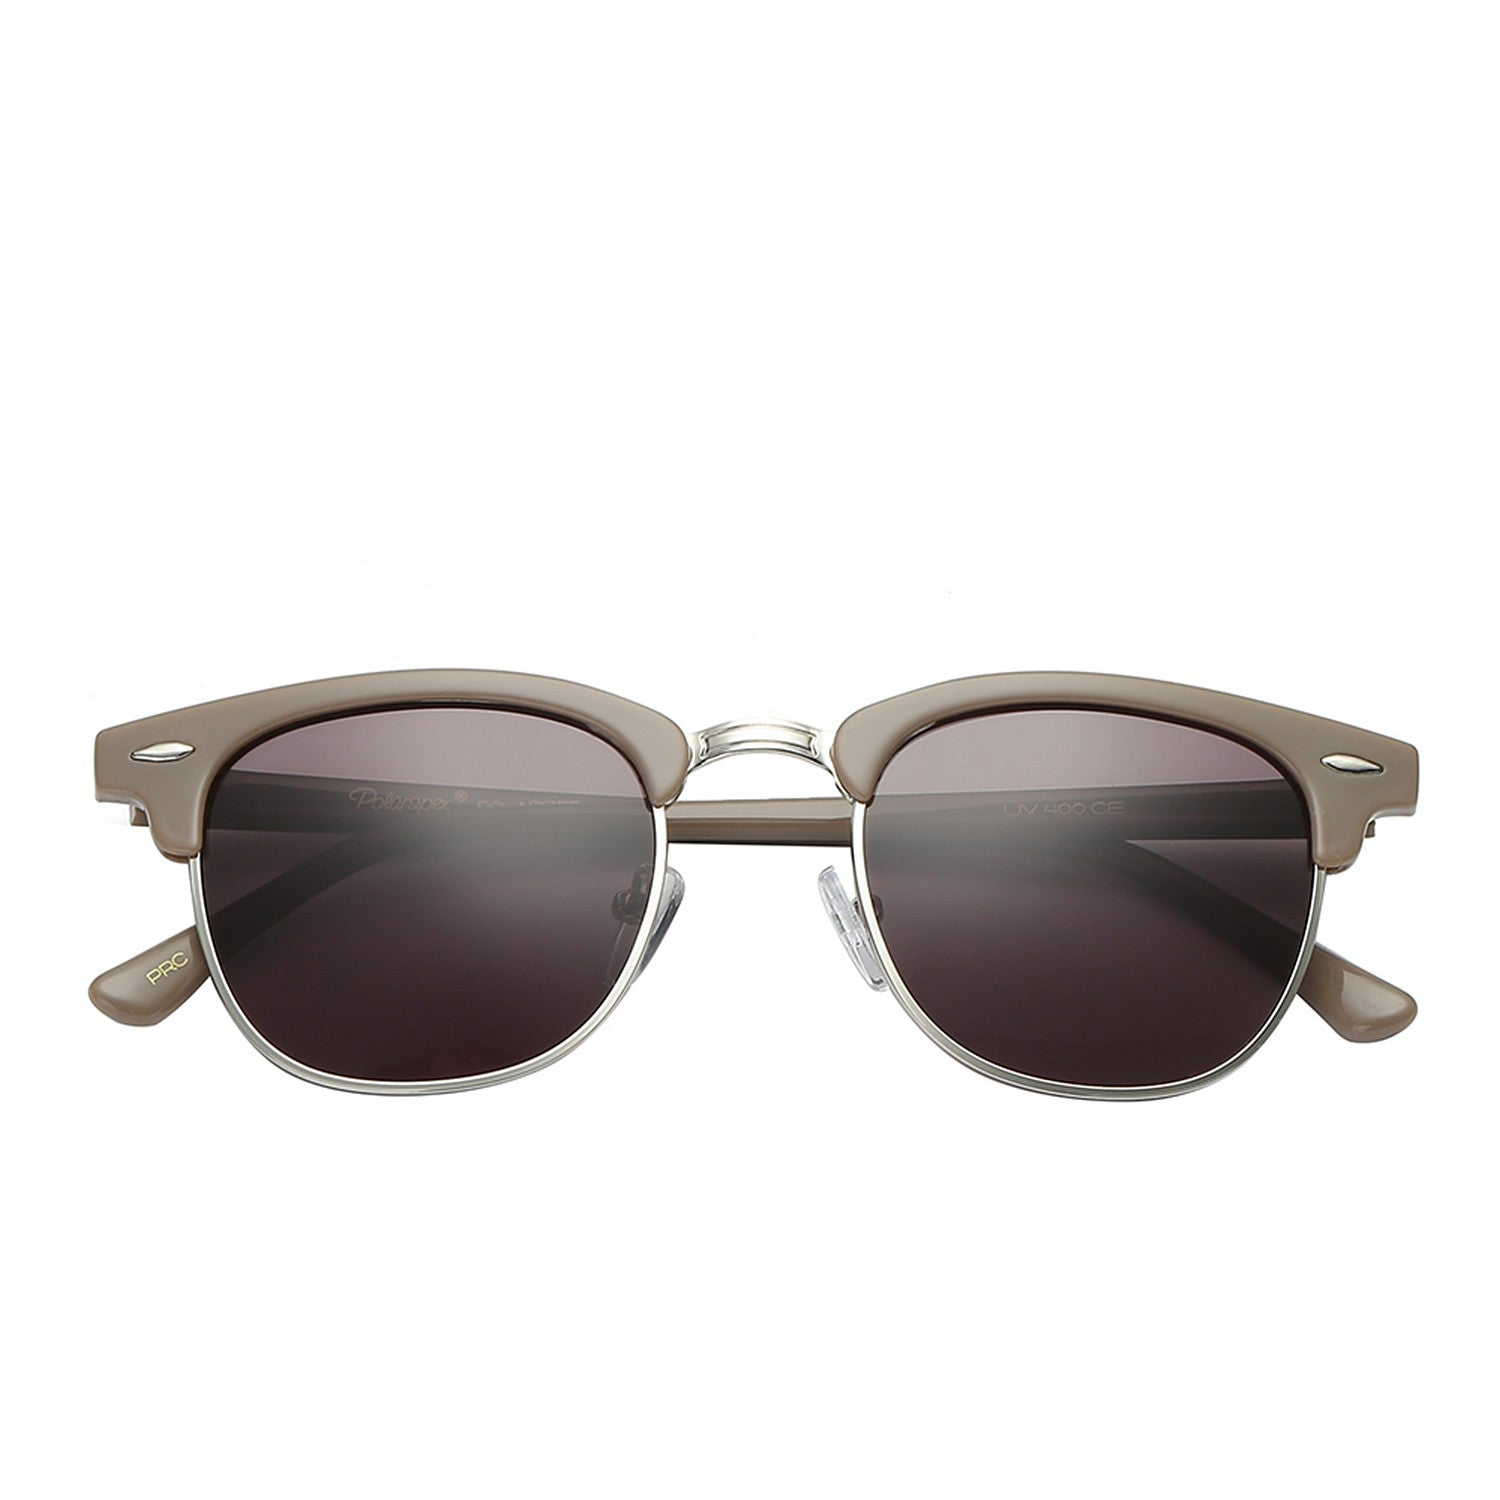 Polarspex Polarized Malcom Half Frame Semi-Rimless Style Unisex Sunglasses with Taupe Frames and Ash Brown Lenses